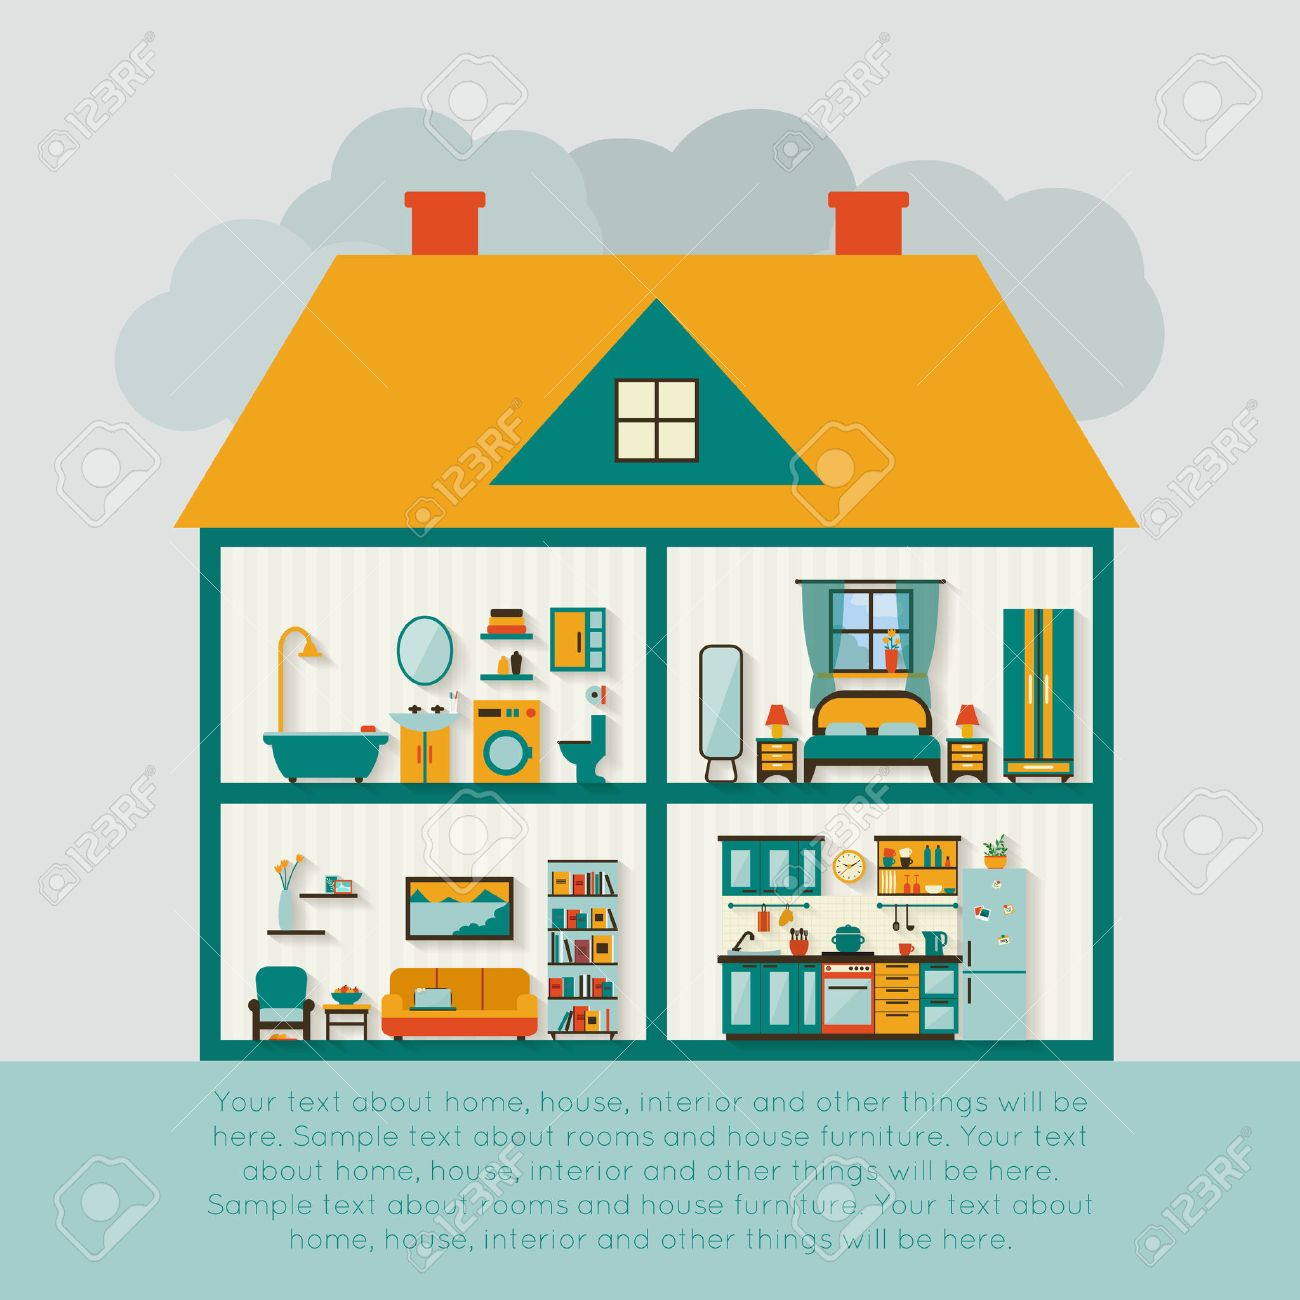 All rooms in the house rooms of homes vector art image illustration - House Interior House In Cut Detailed Modern House Interior Rooms With Furniture